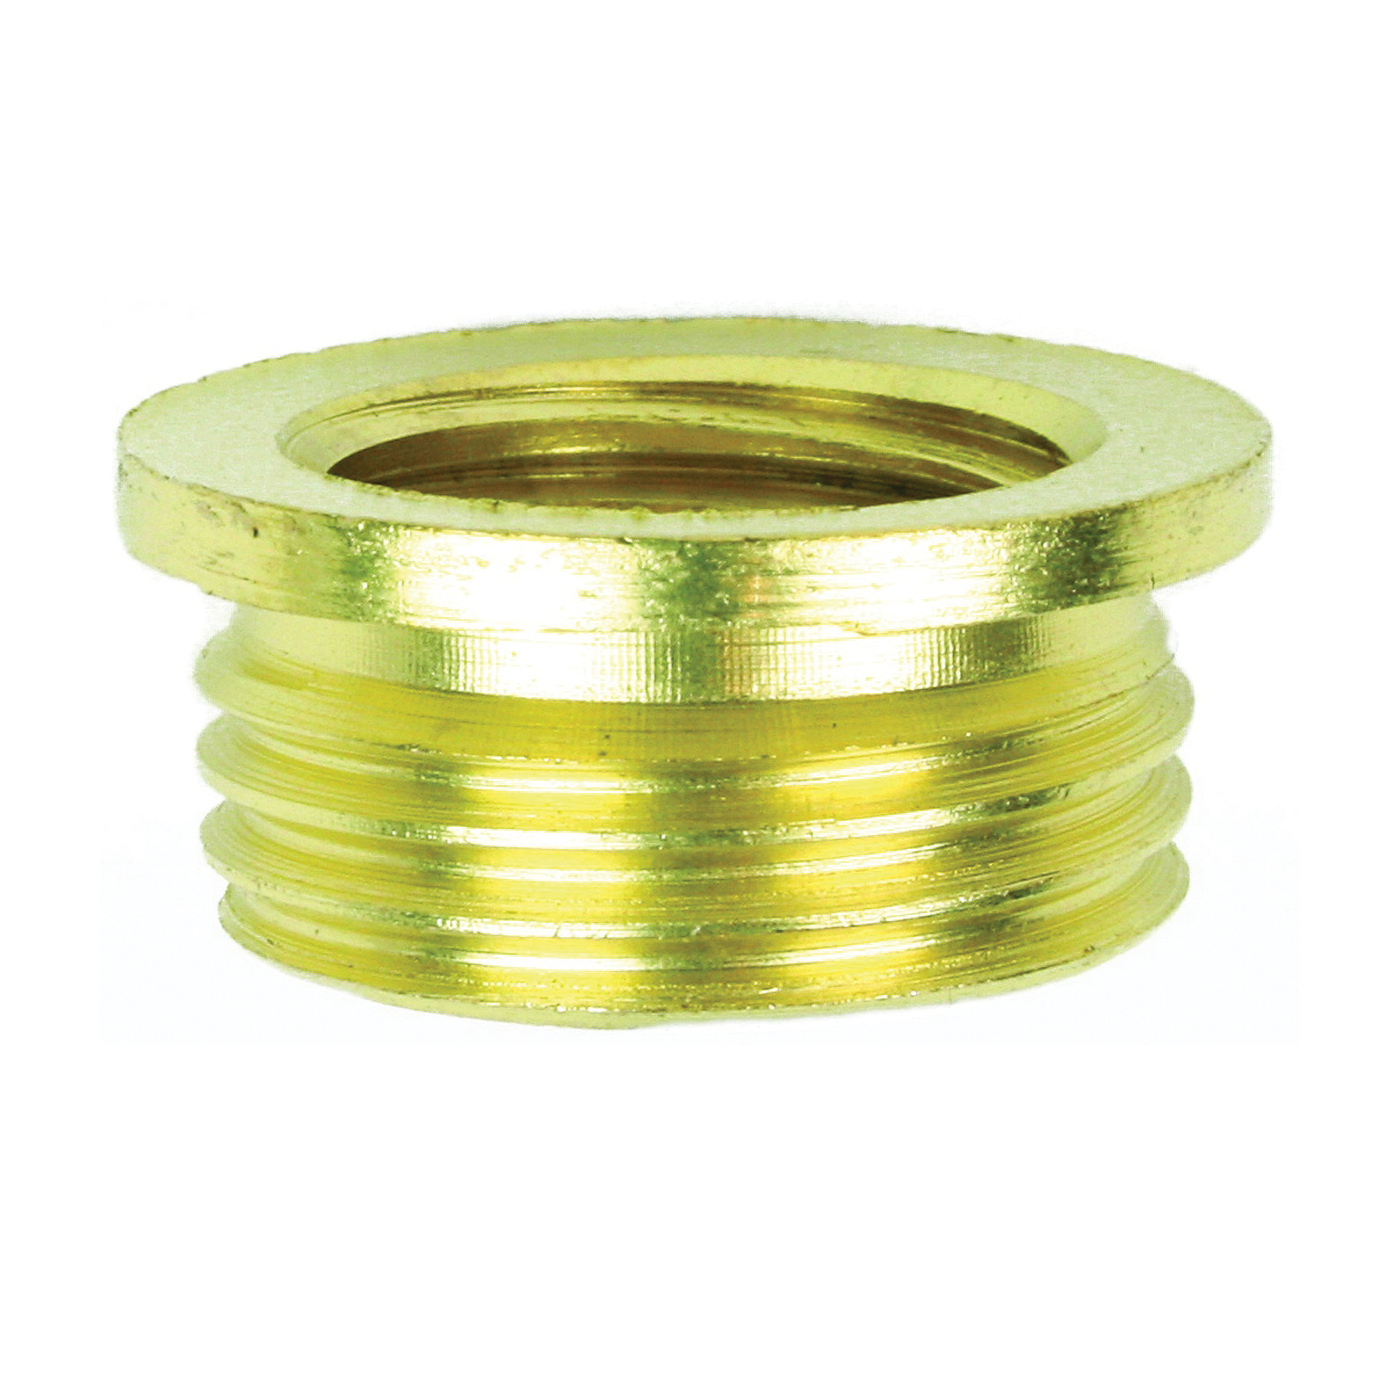 Picture of Jandorf 60146 Lamp Reducer, Brass